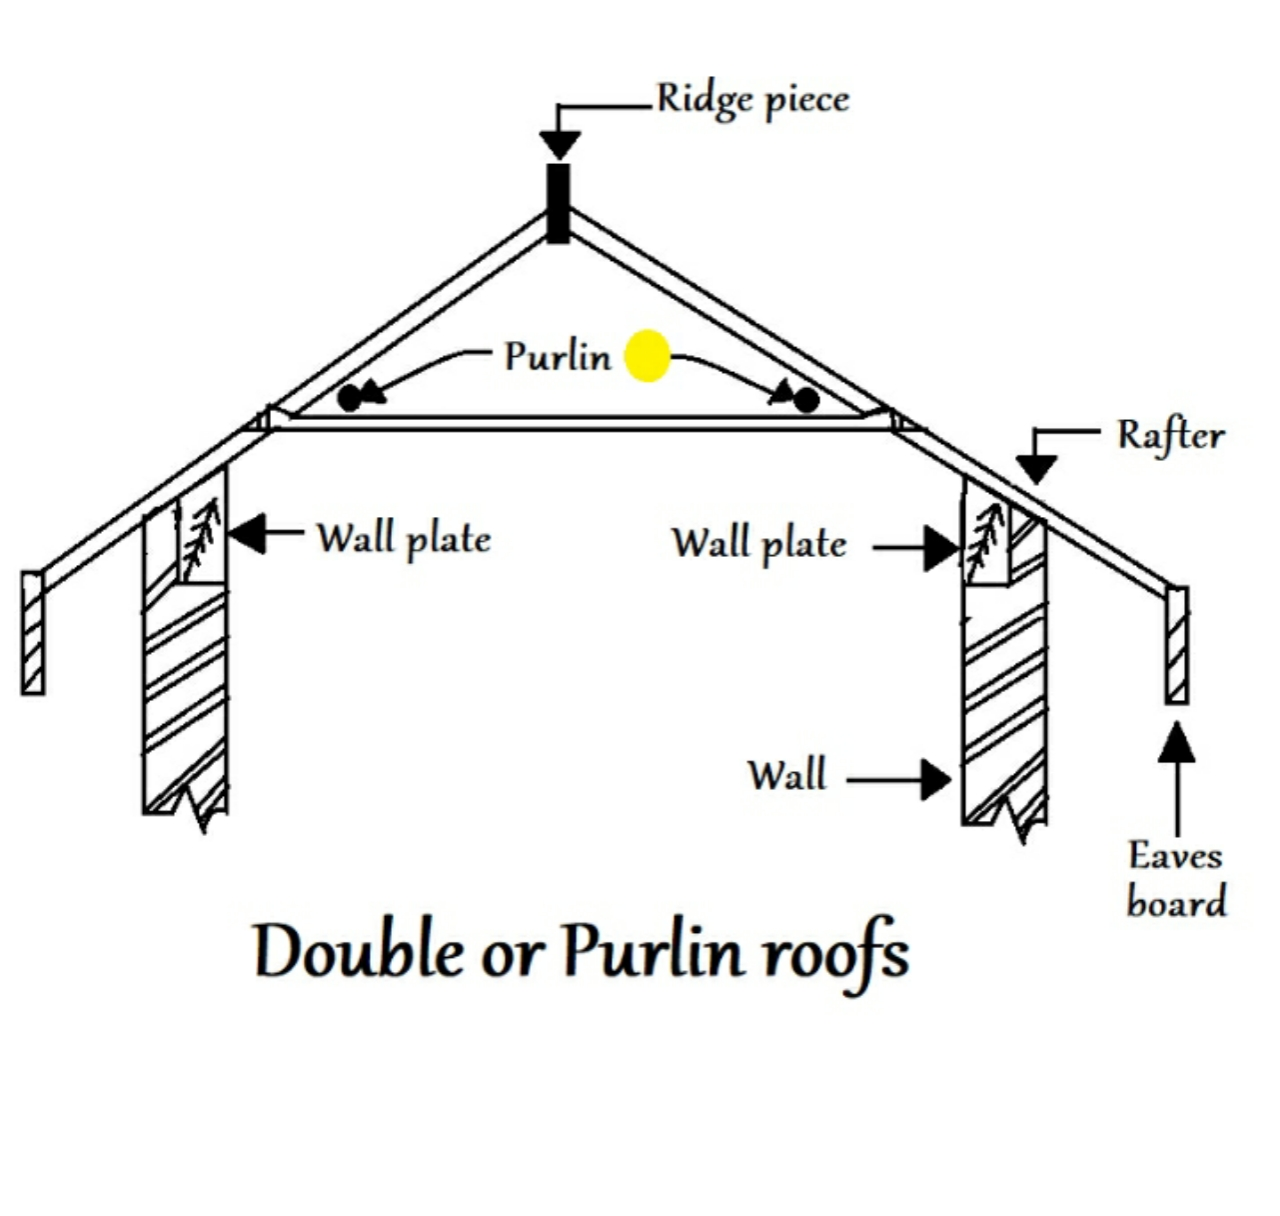 Double or purlin roofs